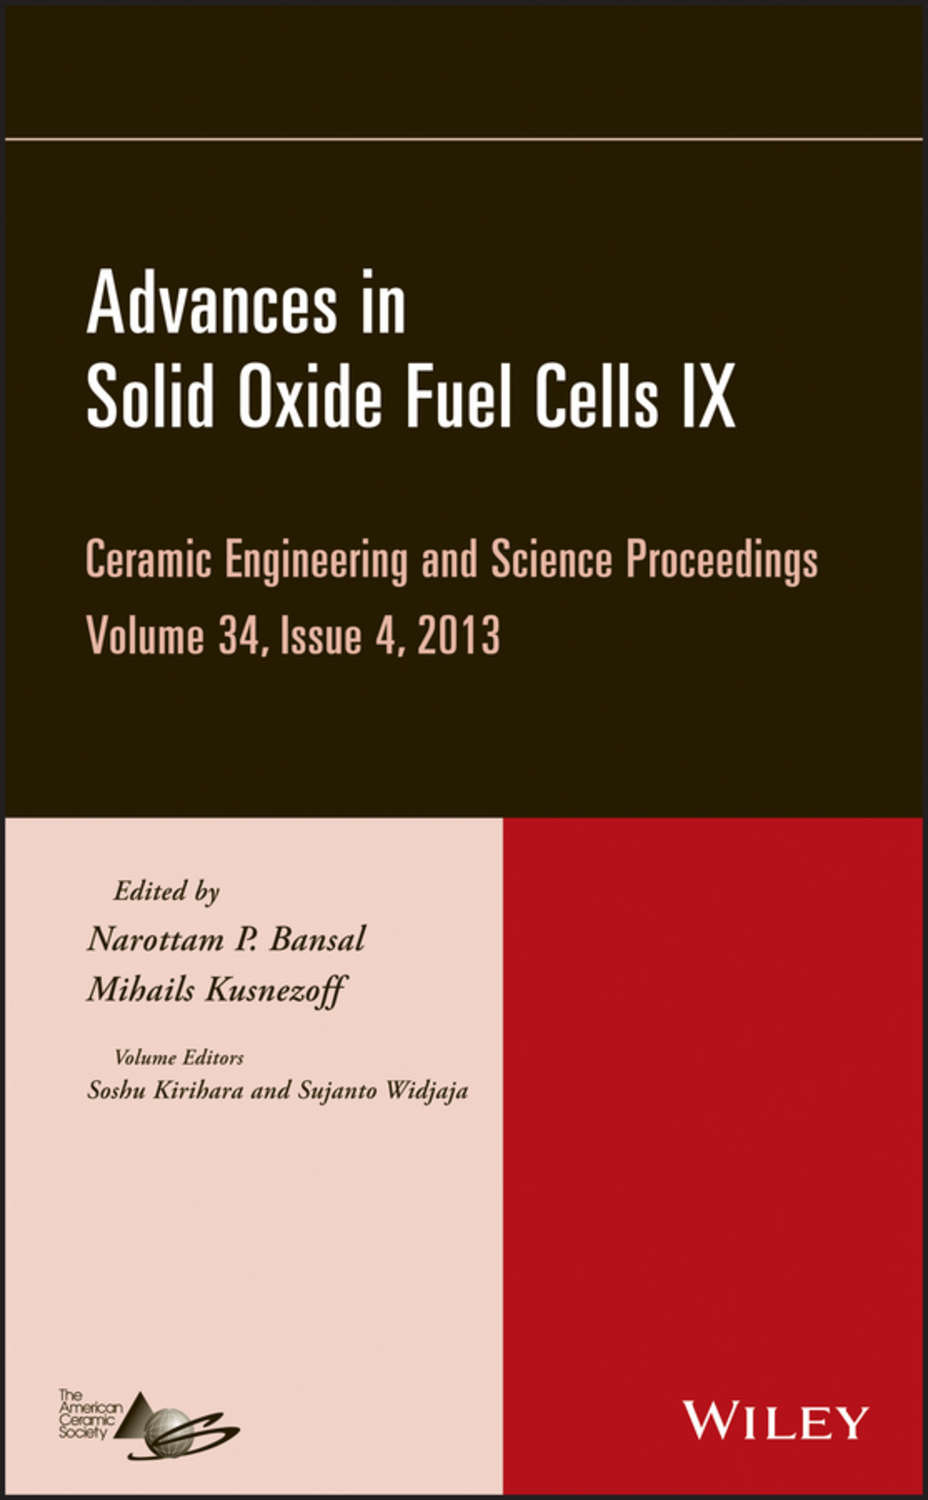 Narottam P  Bansal, Advances in Solid Oxide Fuel Cells IX